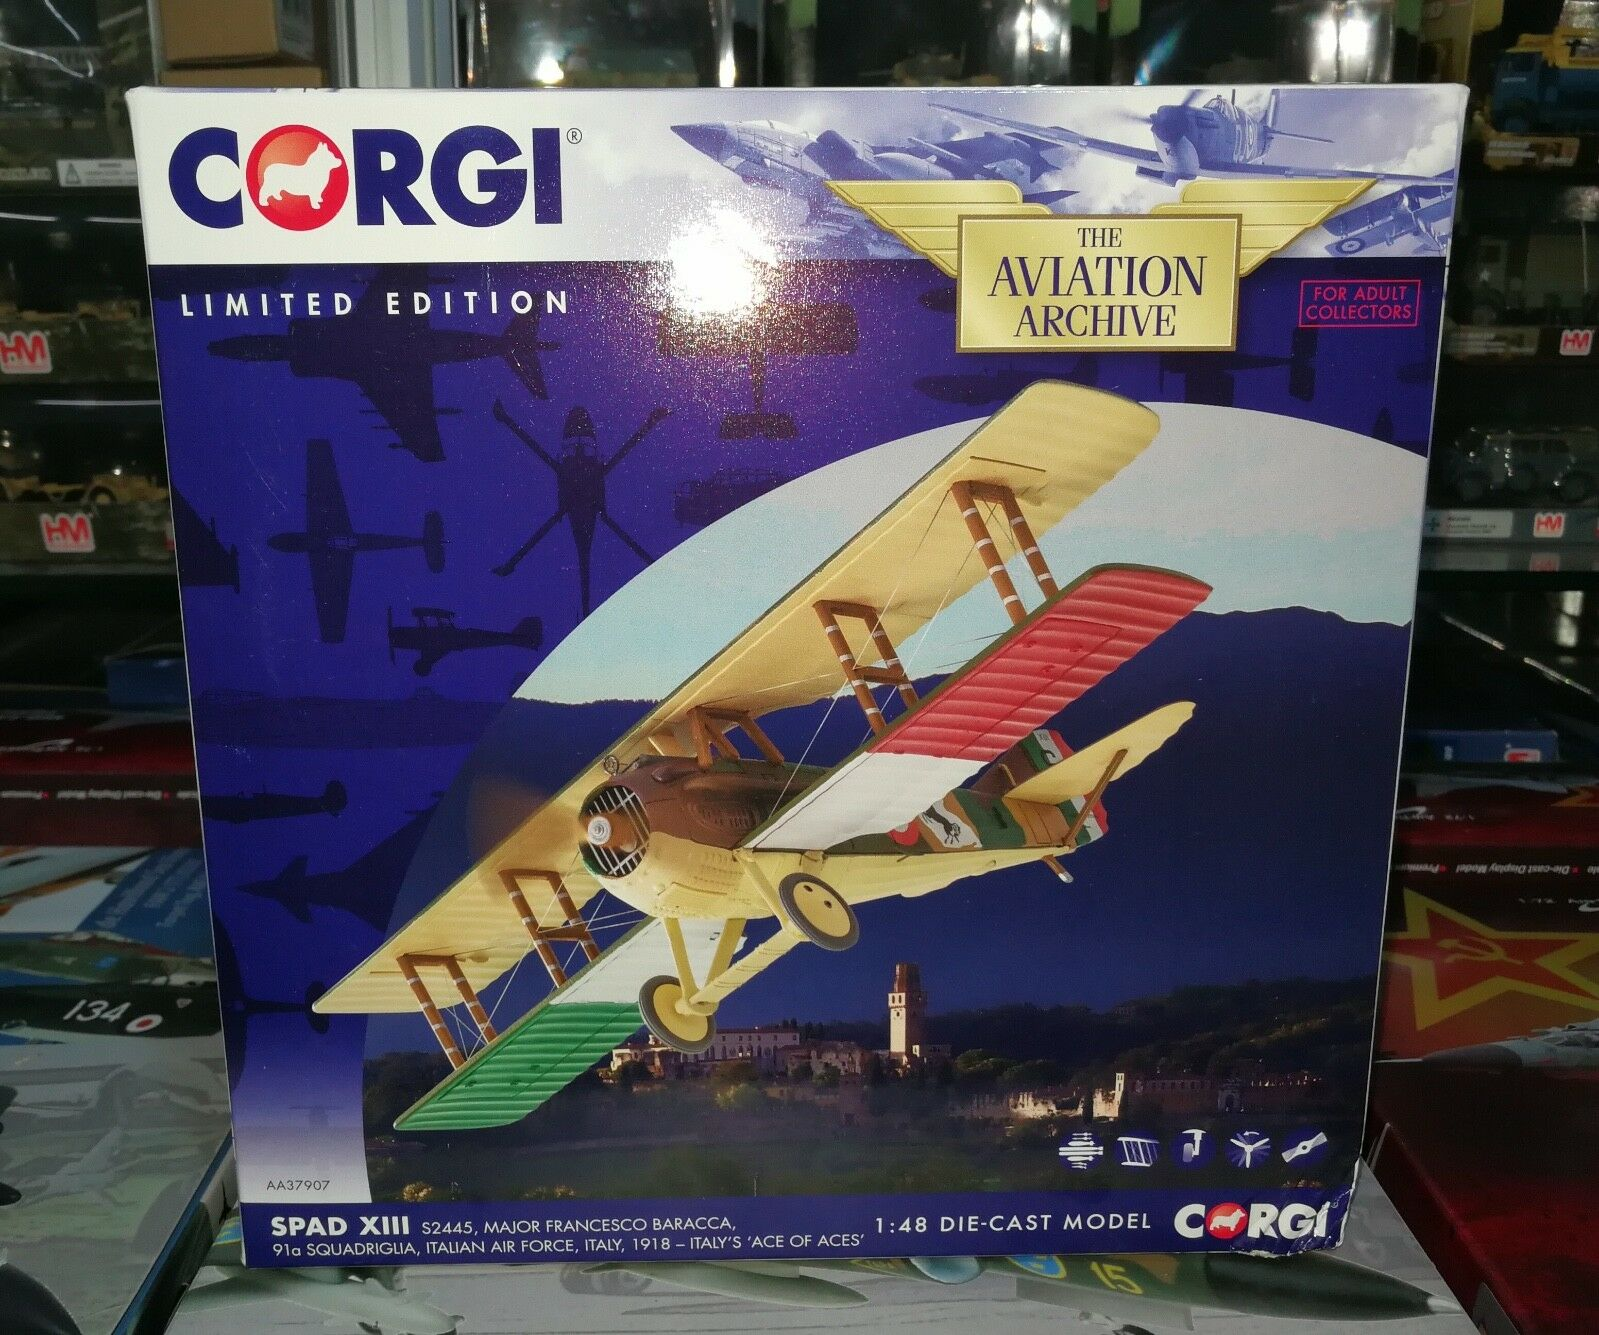 CORGI AA37907 1 48 SPAD XIII S2445 Major Francesco Baracca Italien Force Aérienne NEW IN BOX